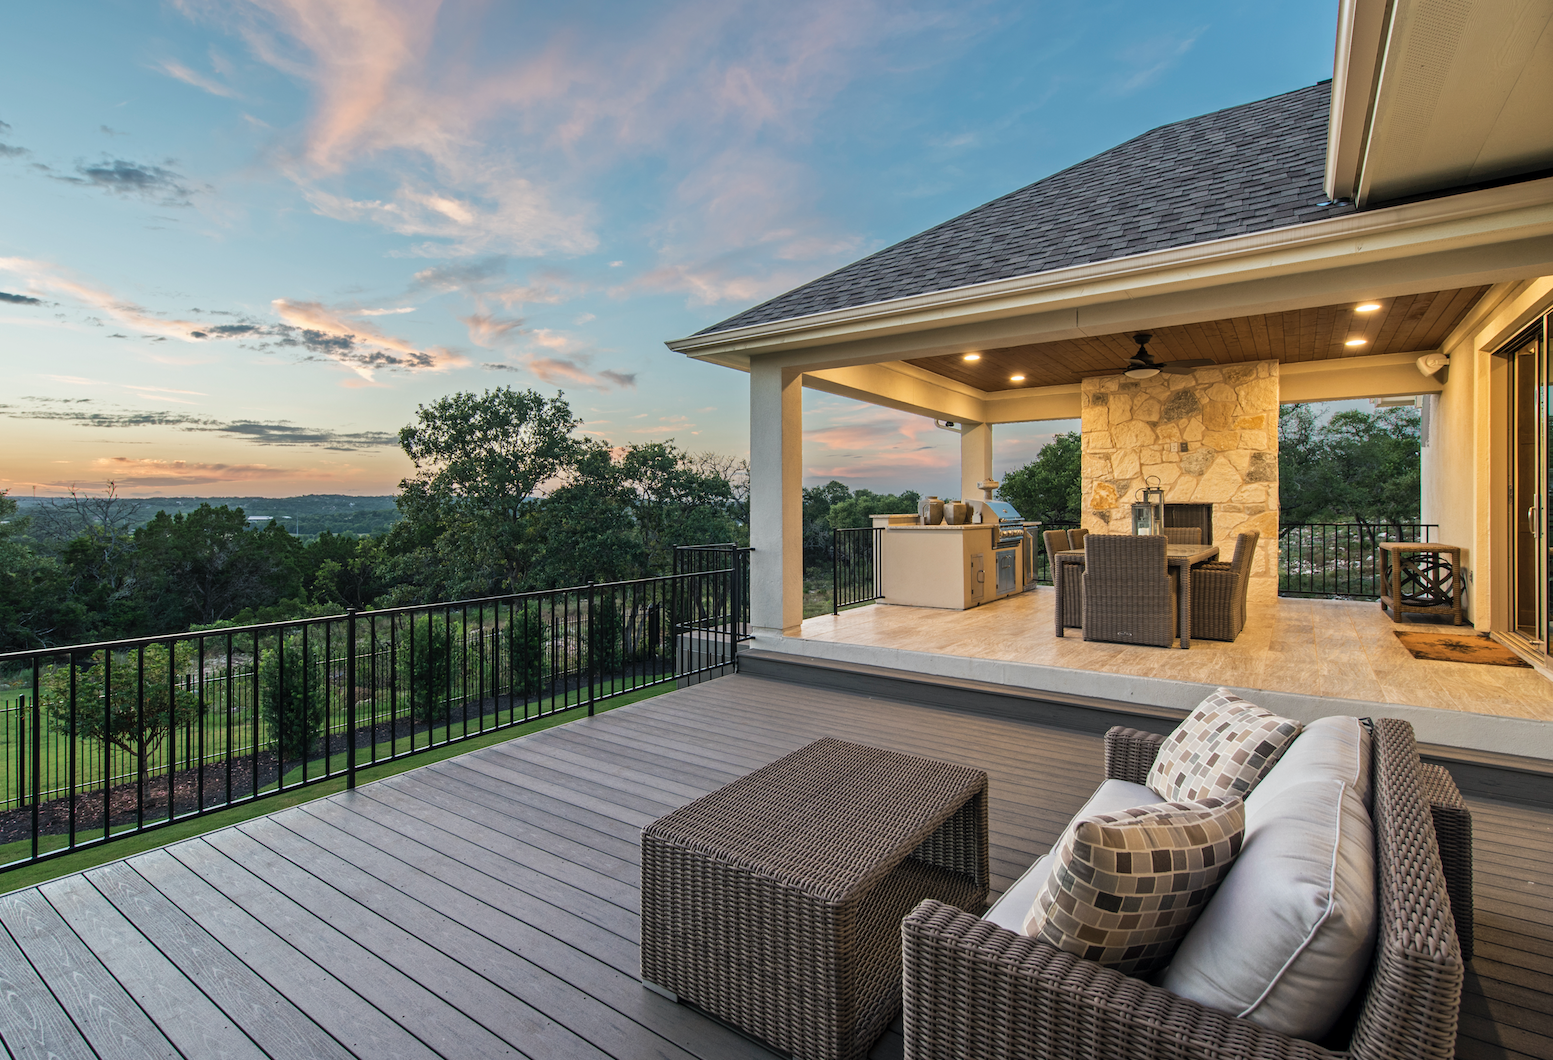 Austin Texas Taylor Morrison A Leading National Homebuilder And Developer Has Announced The Release Of New Home Sites At One S Most Por